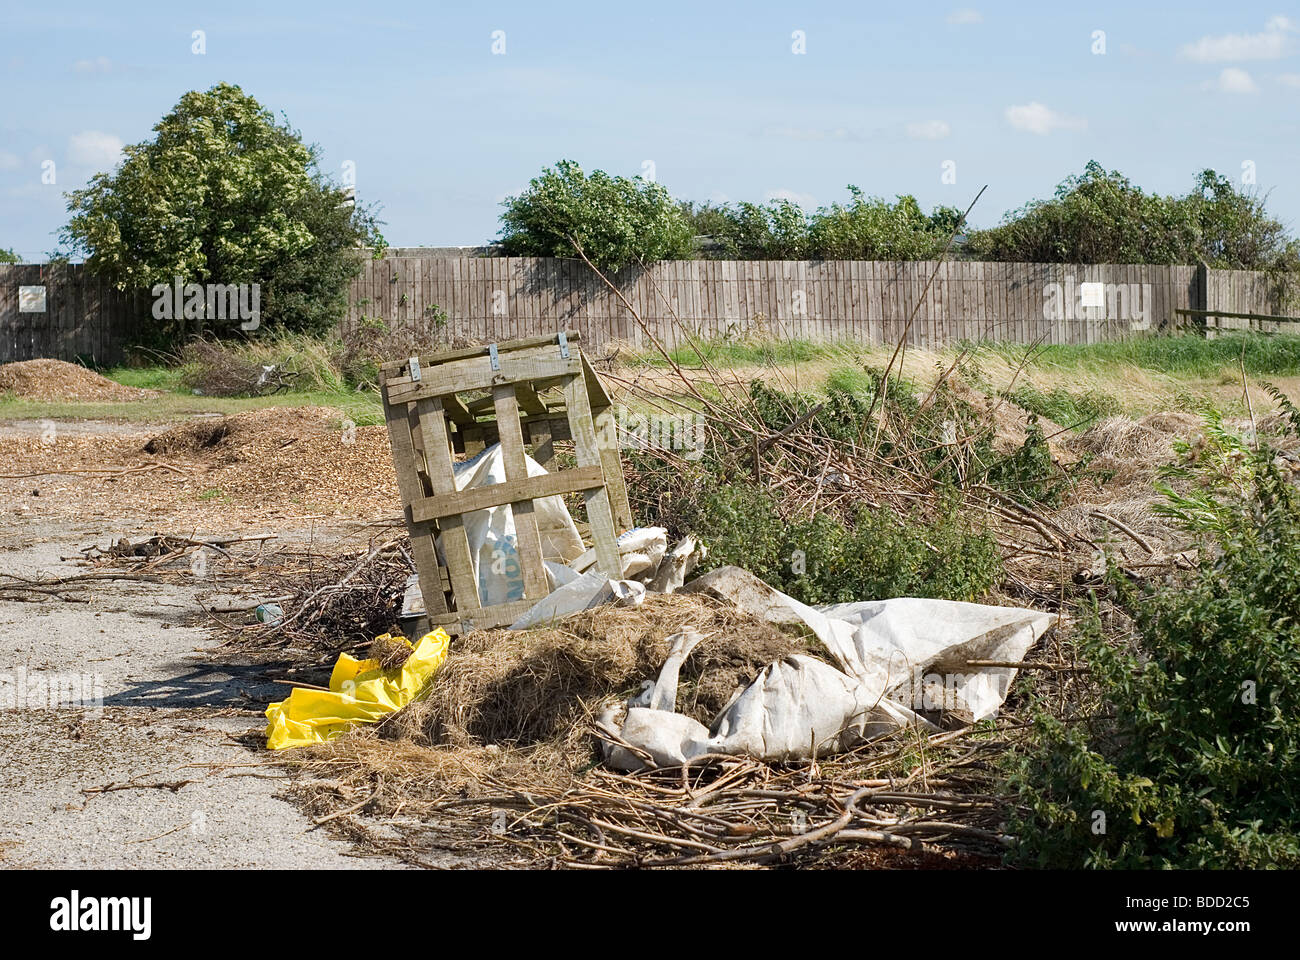 Rubbish dumped on open land - fly tip tipping - Stock Image